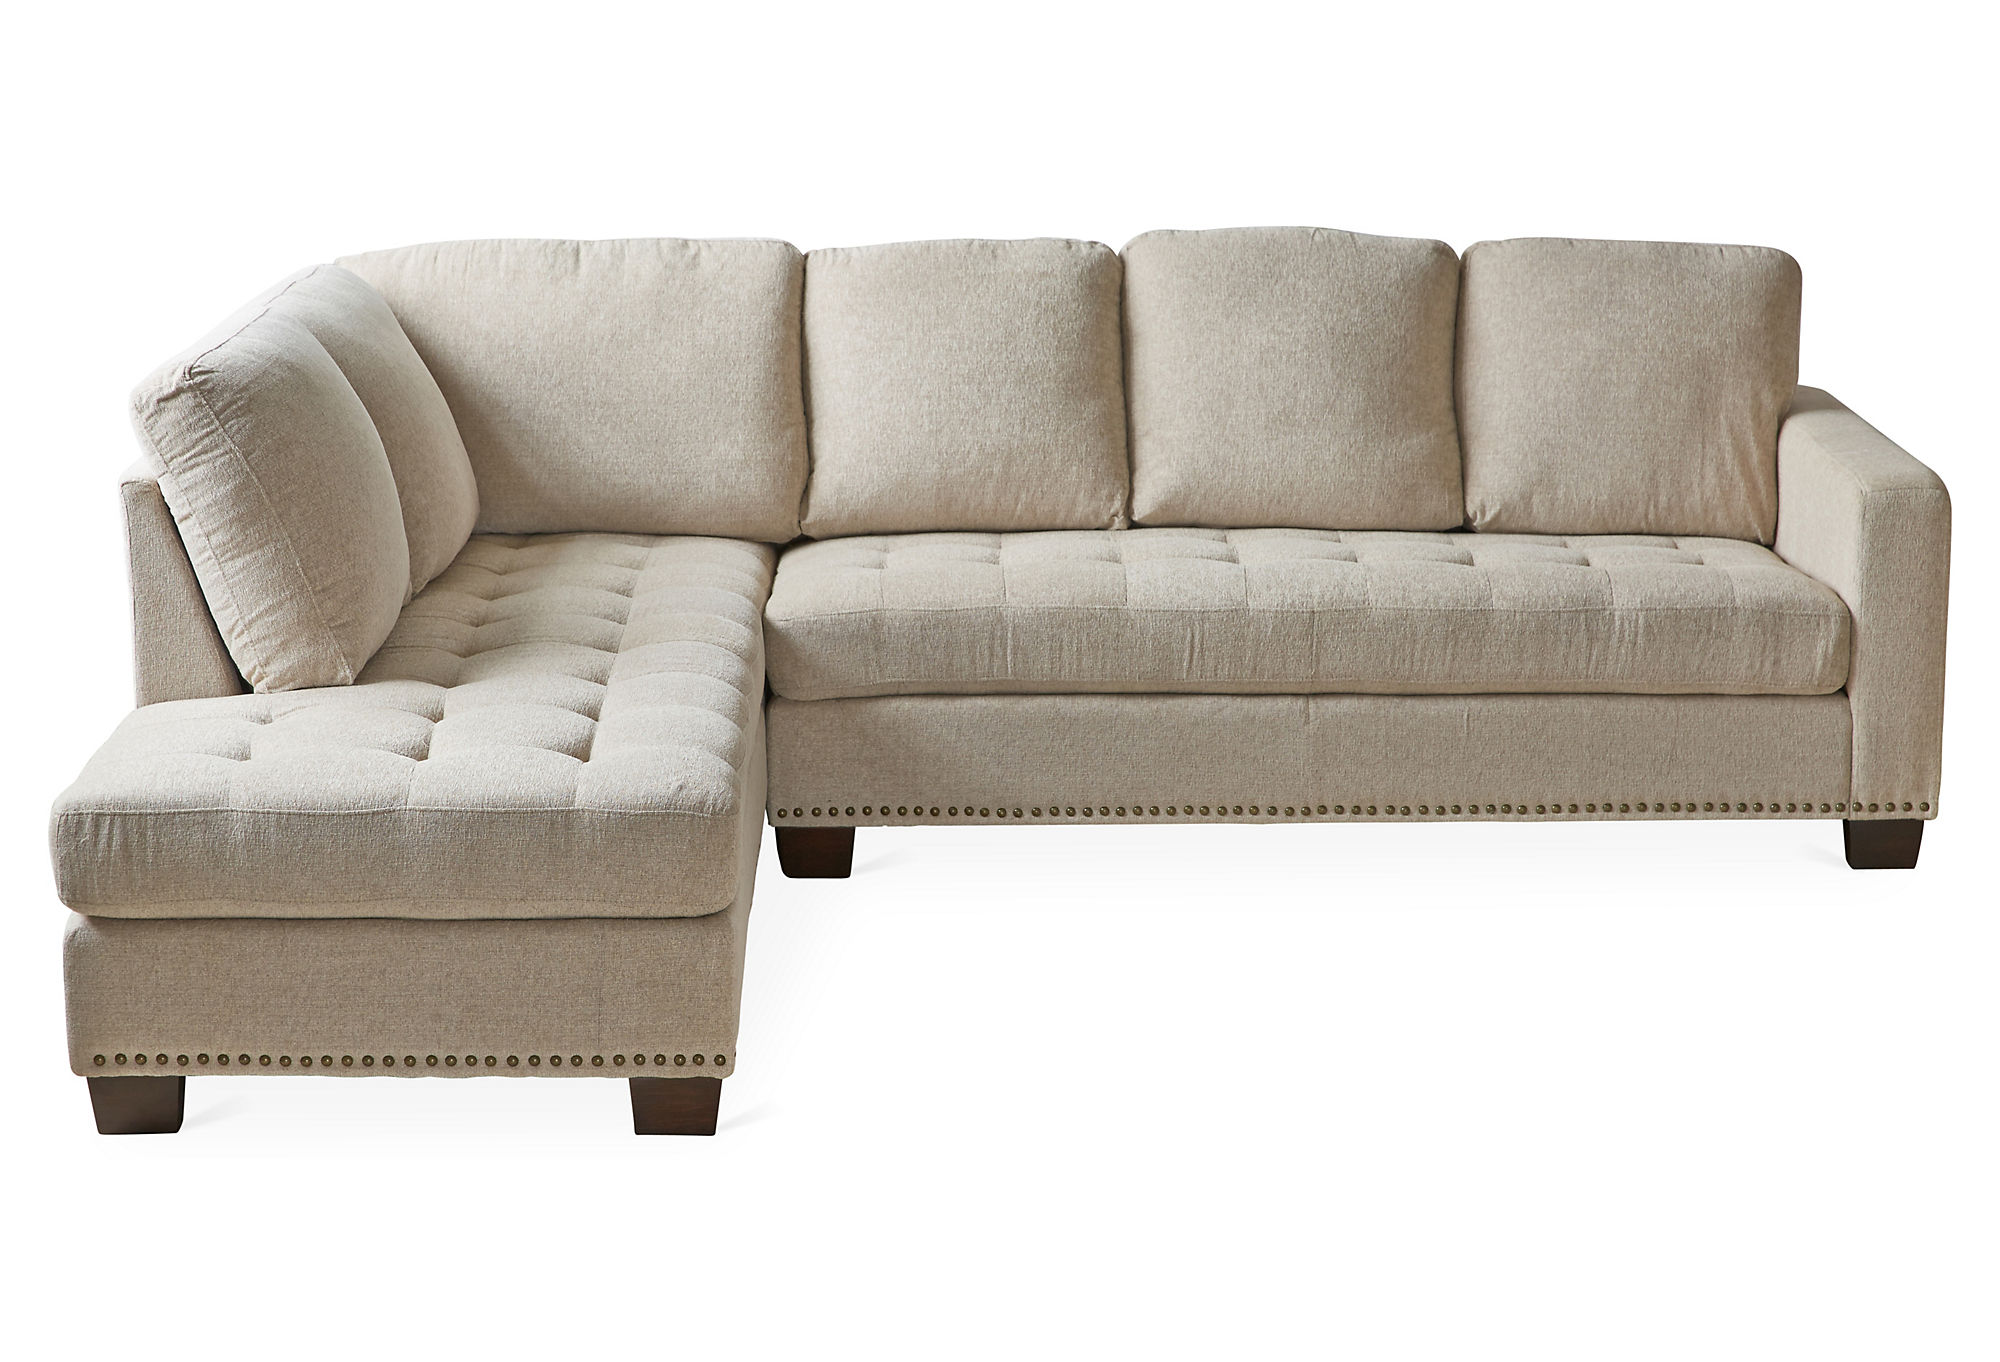 Vapor Daybed Sectional 2pc Right Arm Facing by Z Gallerie